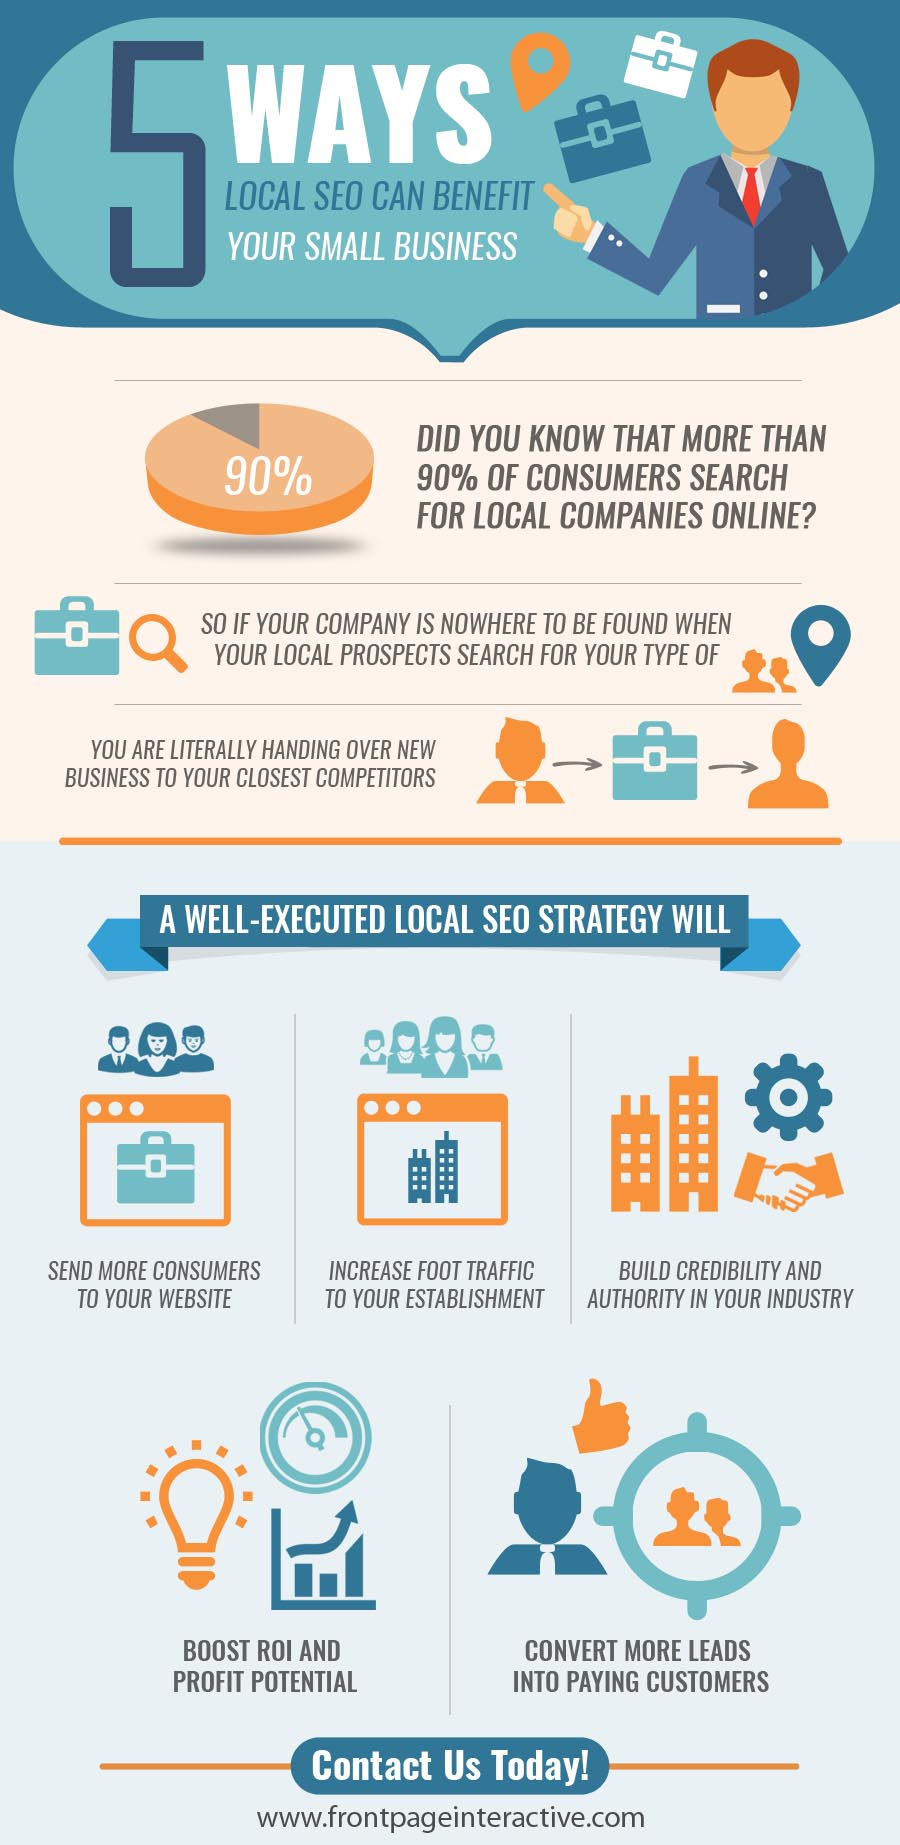 5 Ways Local SEO Can Benefit Your Small Business